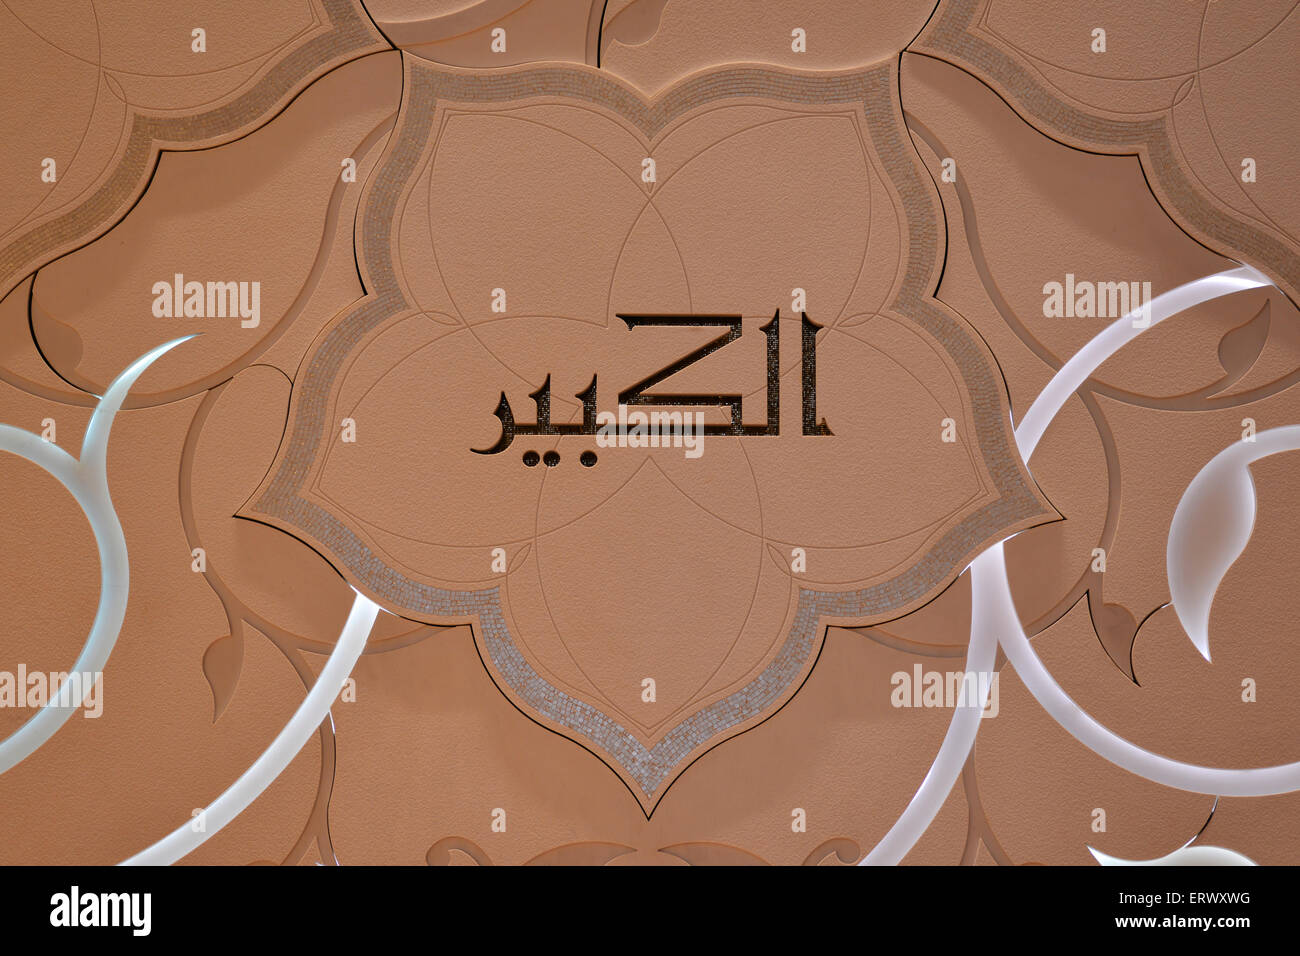 Arabic script on the walls of the Sheikh Zayed Grand Mosque in Abi Dhabi - Stock Image